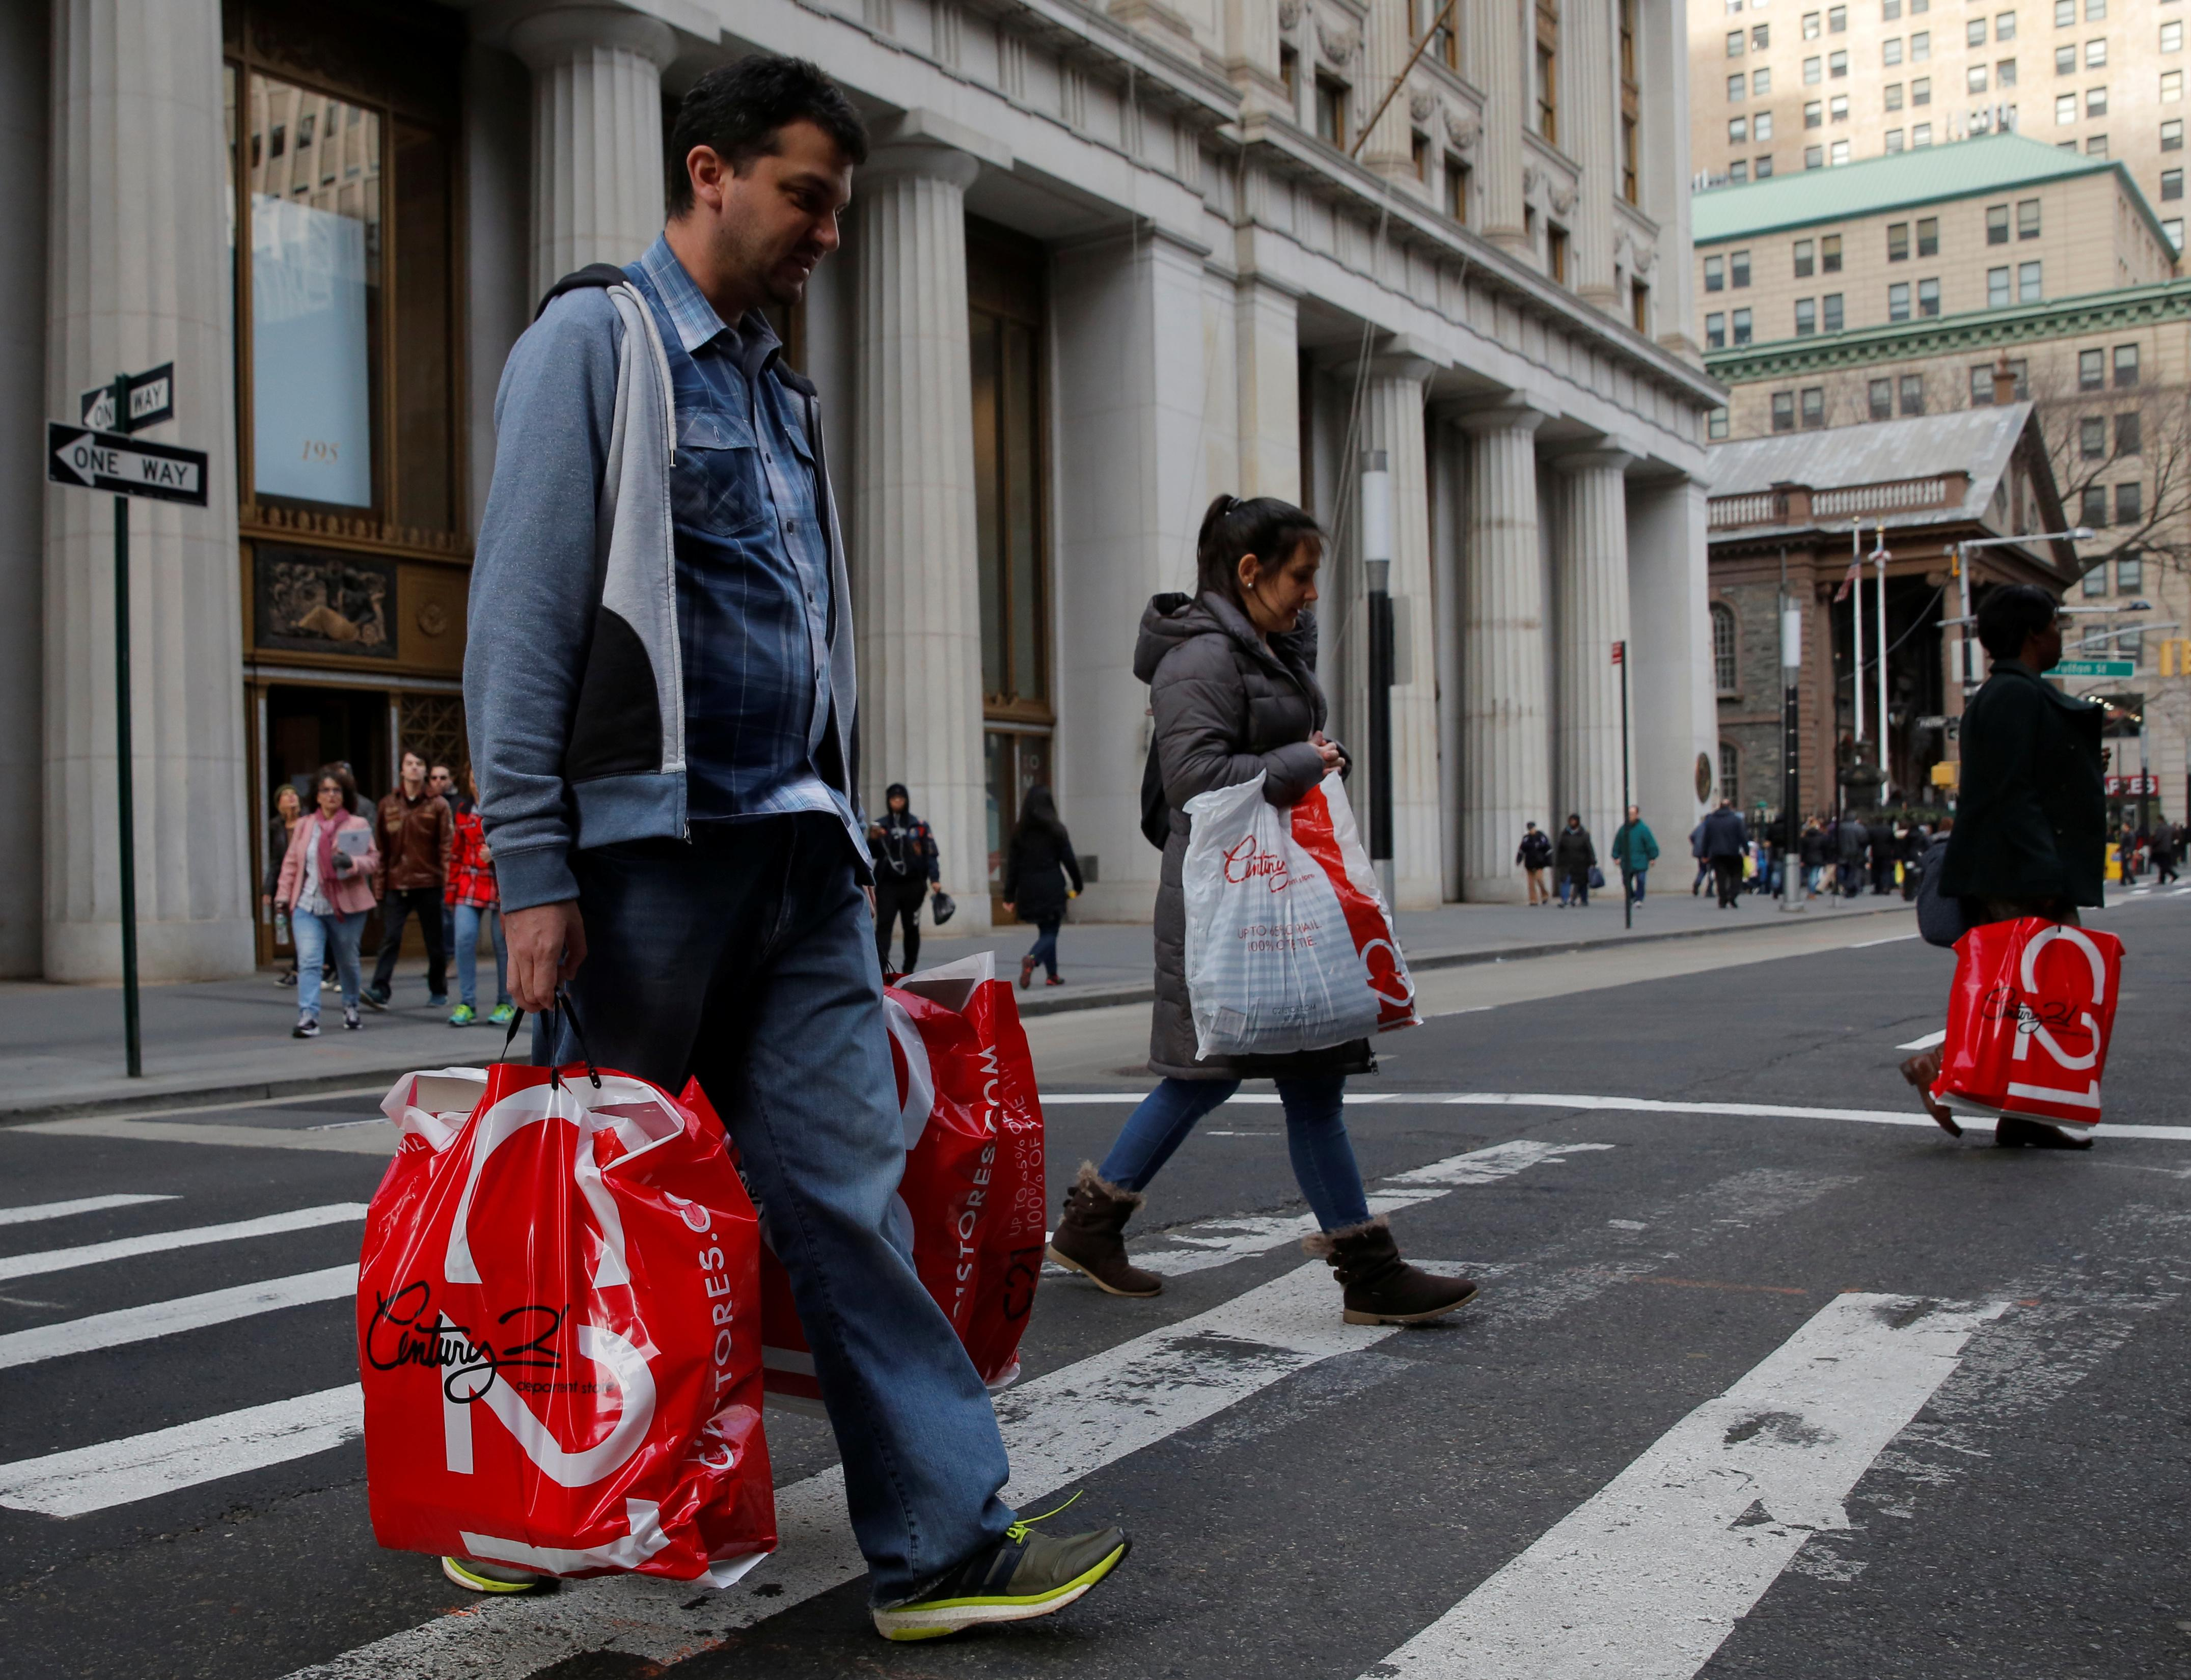 Consumer sentiment, Fed speakers – What to know in markets Friday